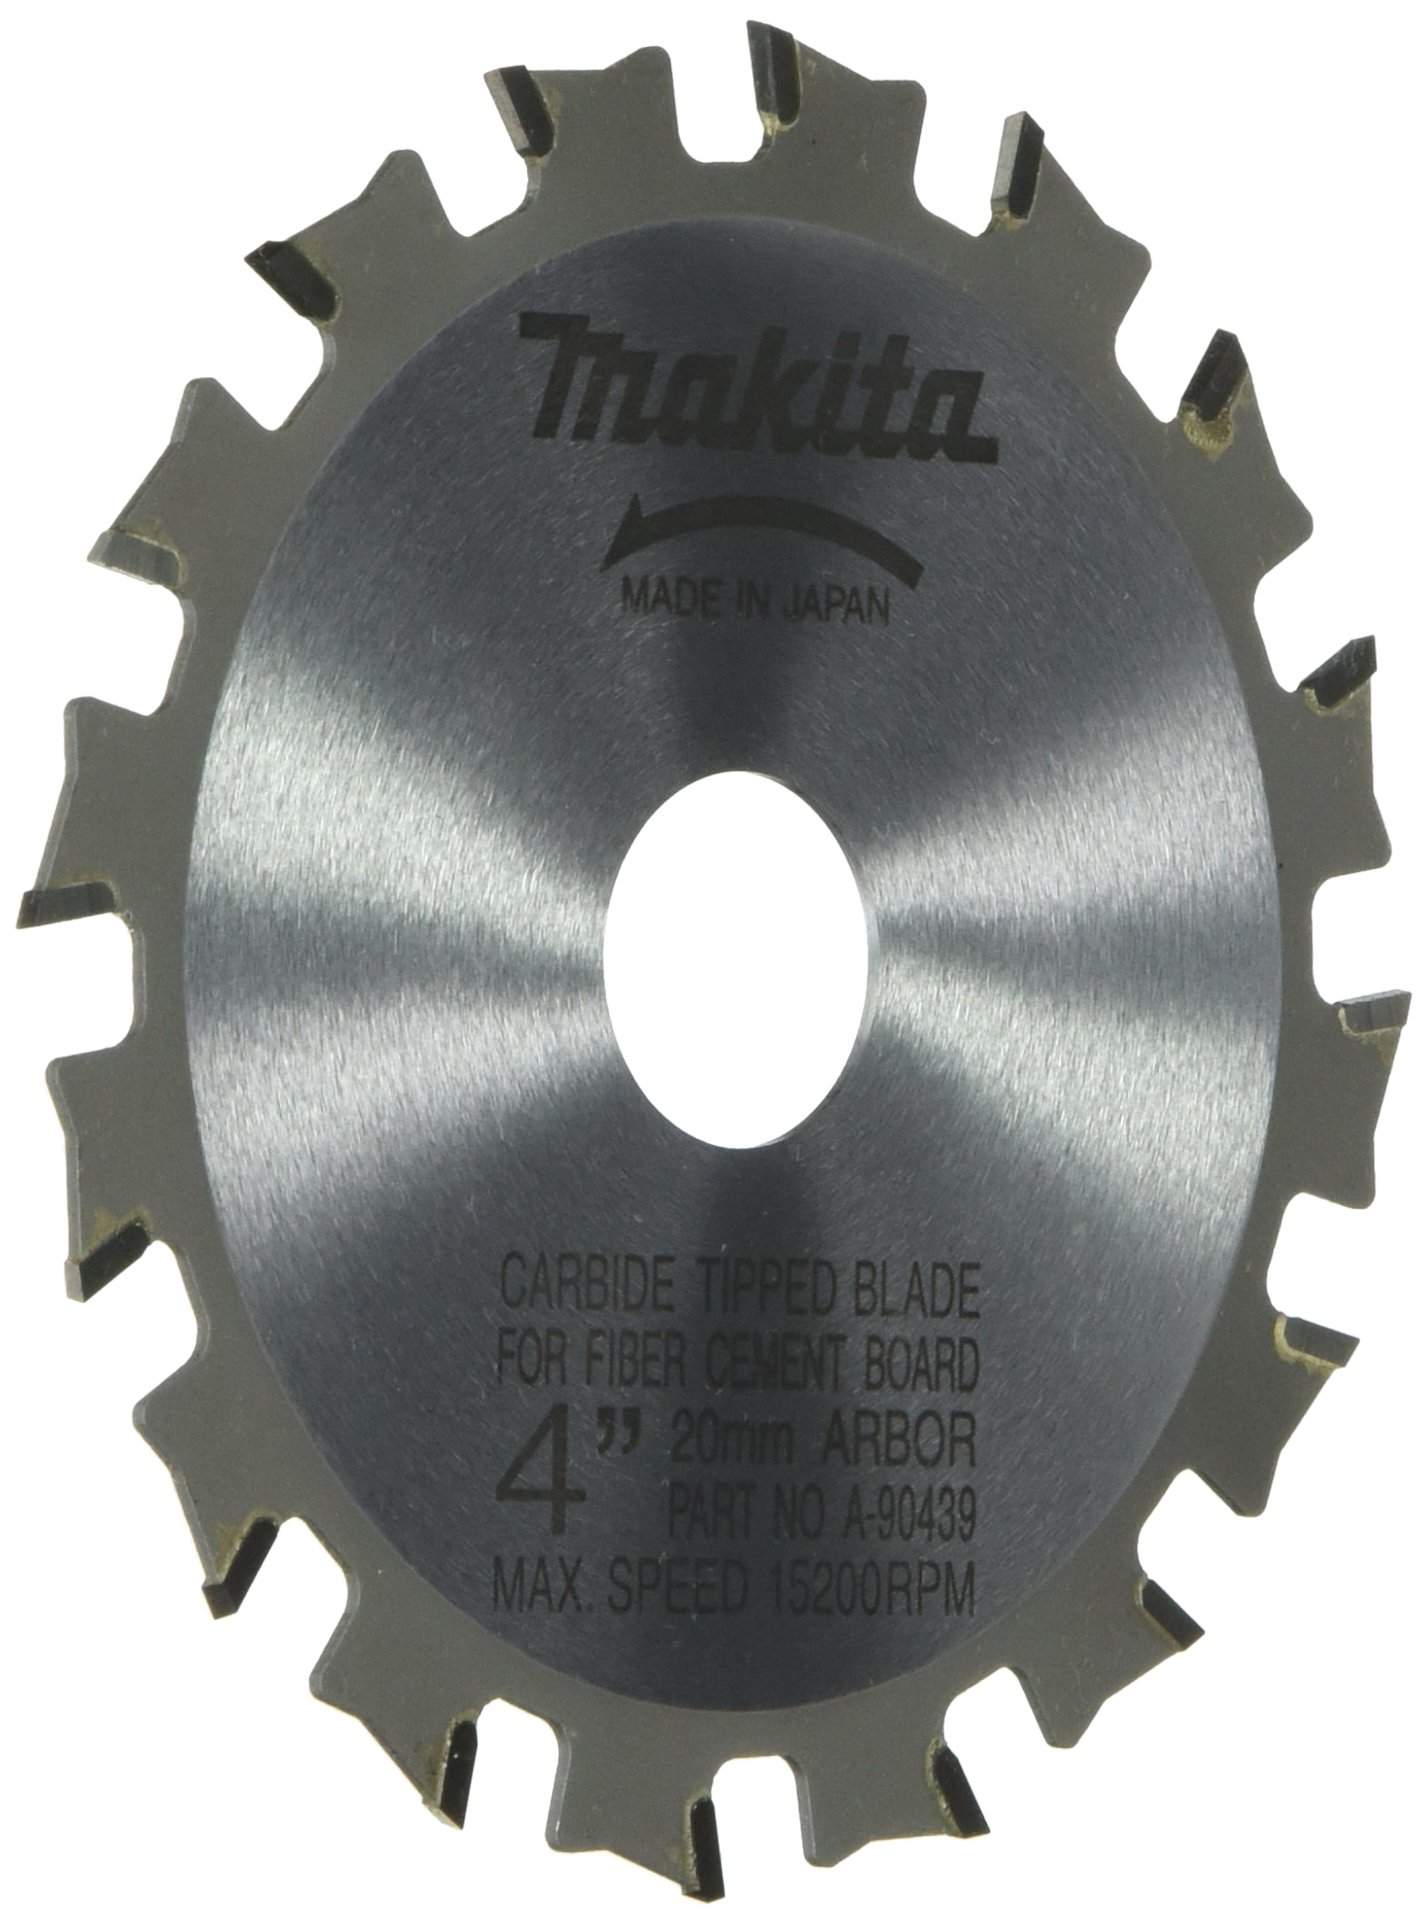 Makita A-90439 4-Inch Carbide Tipped Blade, 16-Teeth